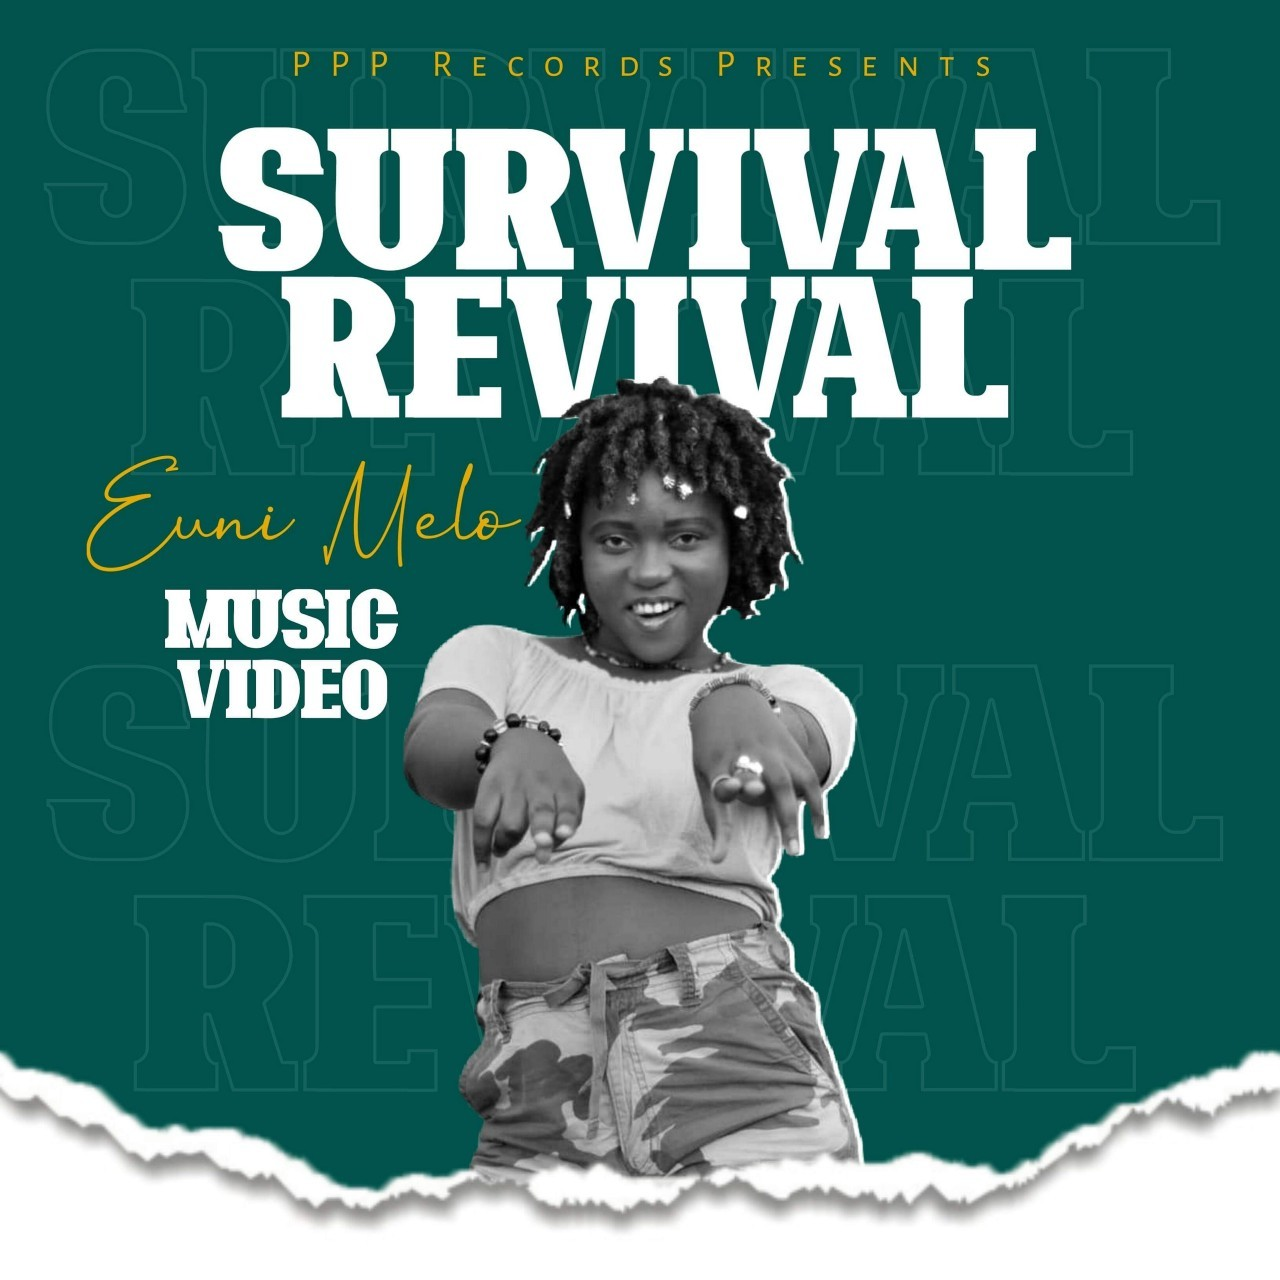 Euni Melo — Survival Revival (Official Video) Dir. By Golden Wabbit